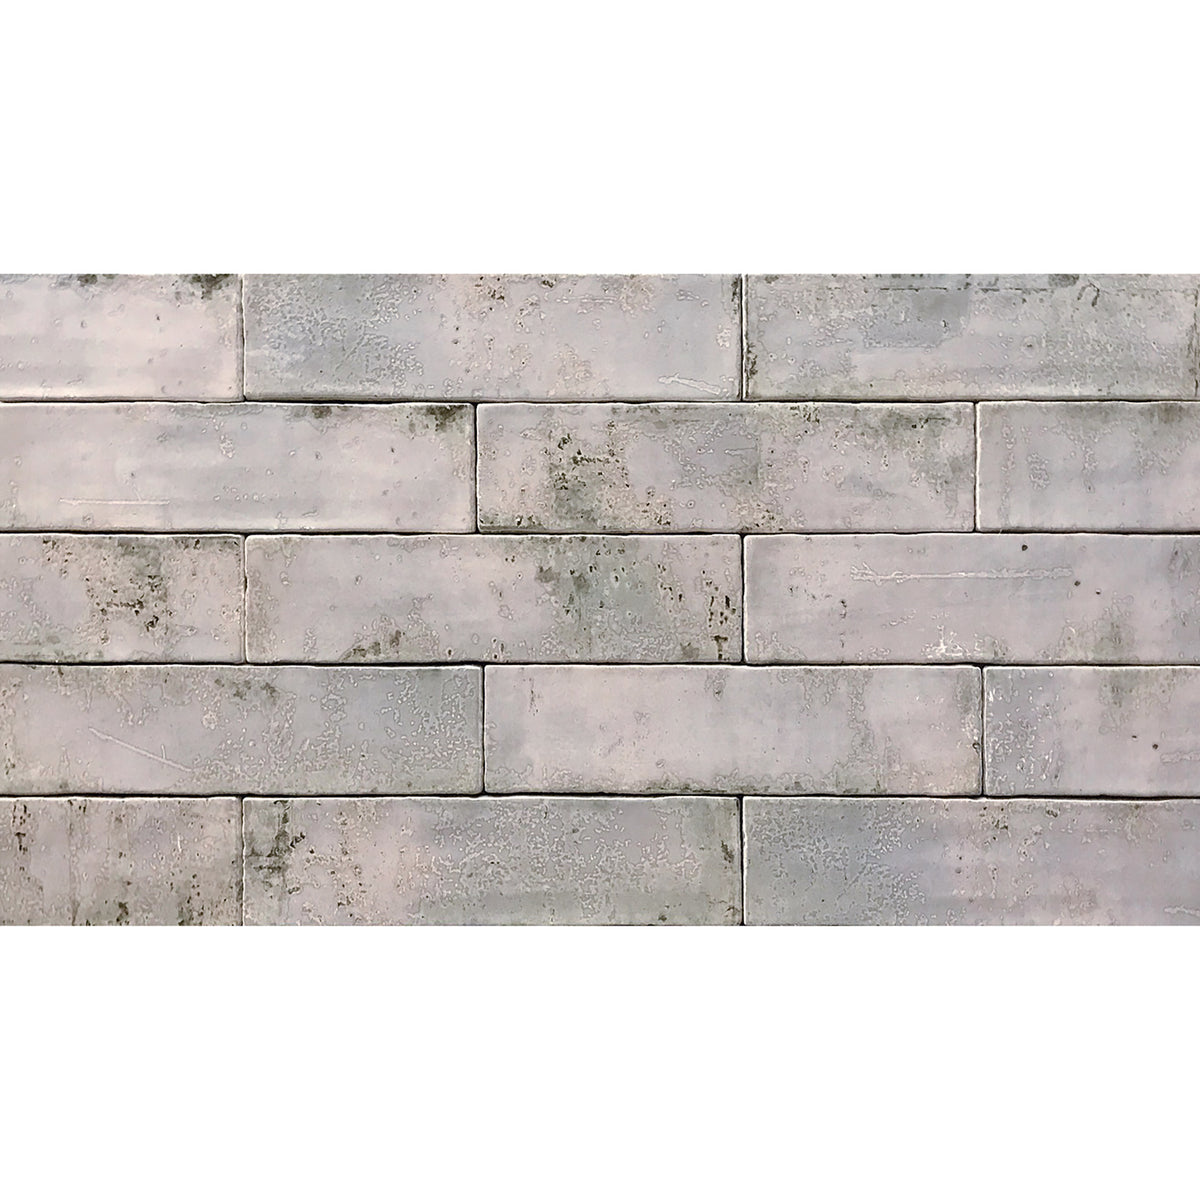 Tesoro Decorative Collection - Grunge Ceramic 3 in. x. 12 in. Wall Tile - Grey